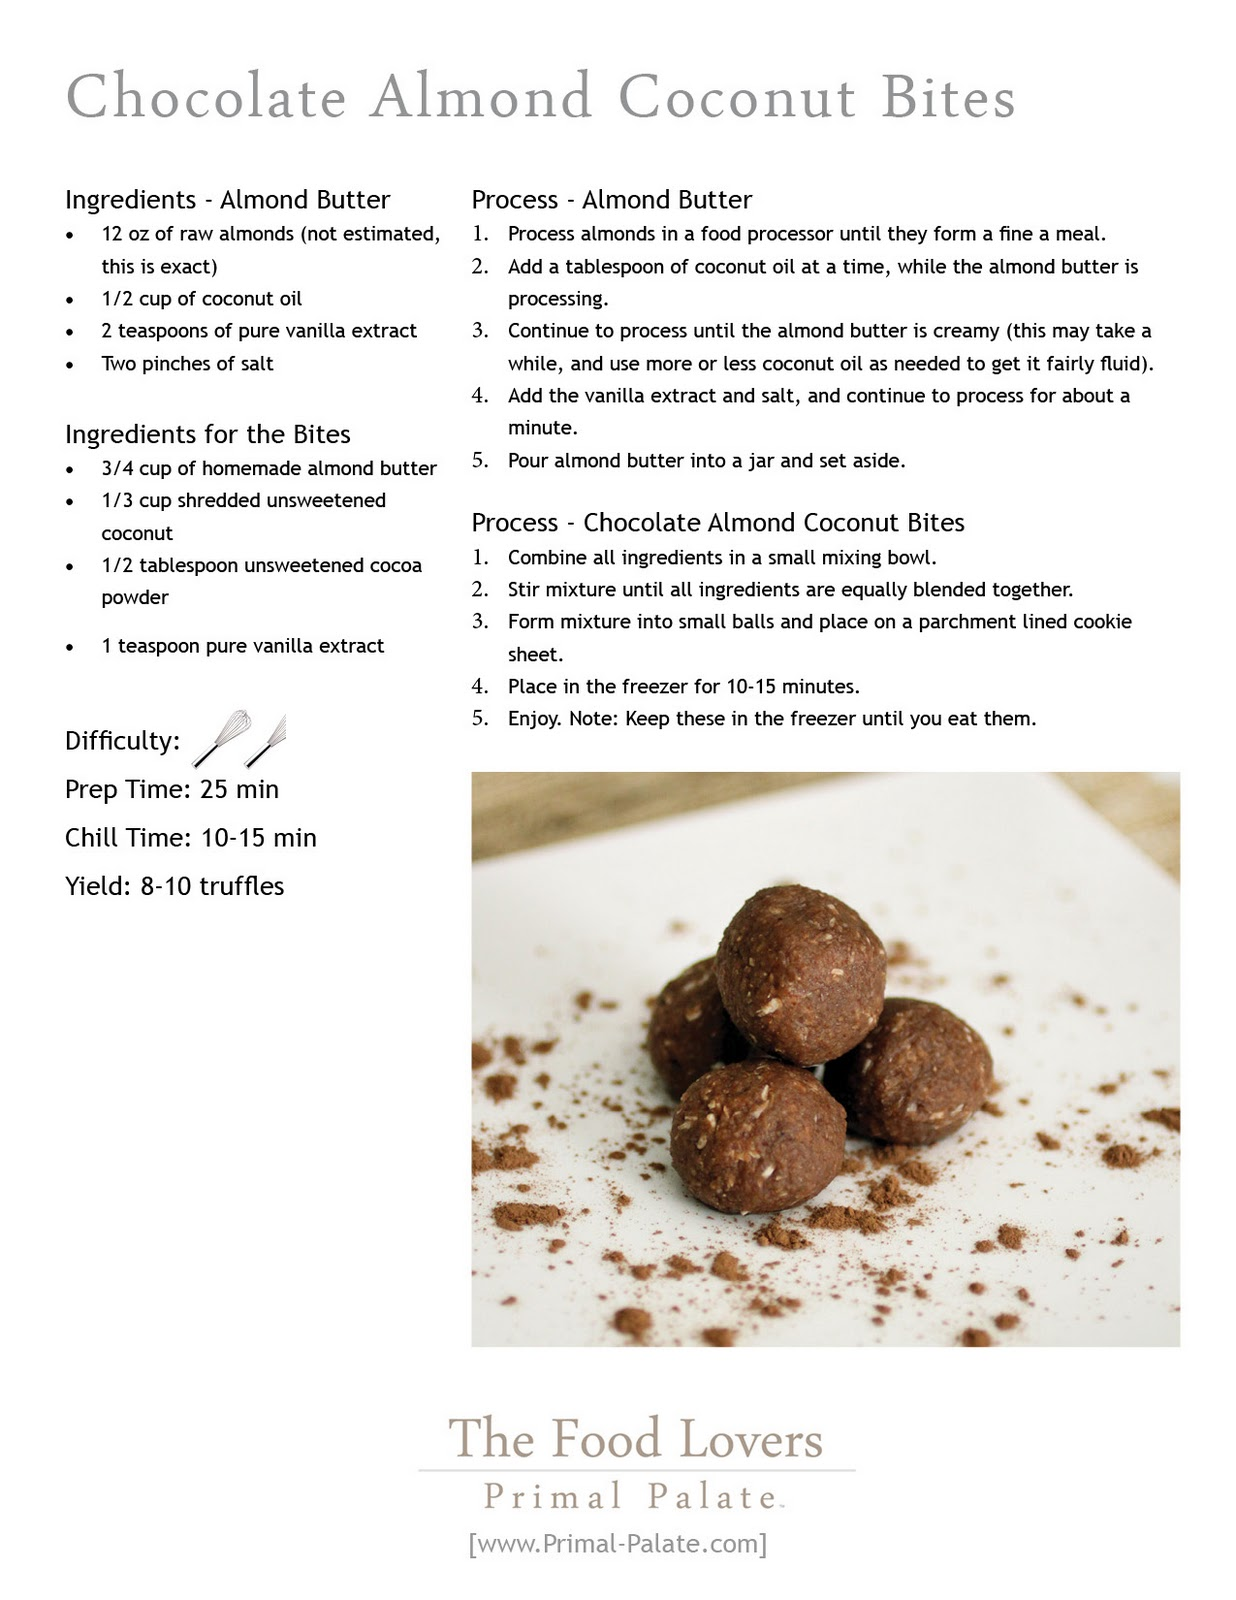 Chocolate Almond Coconut BitesPrimal Palate Paleo Recipes